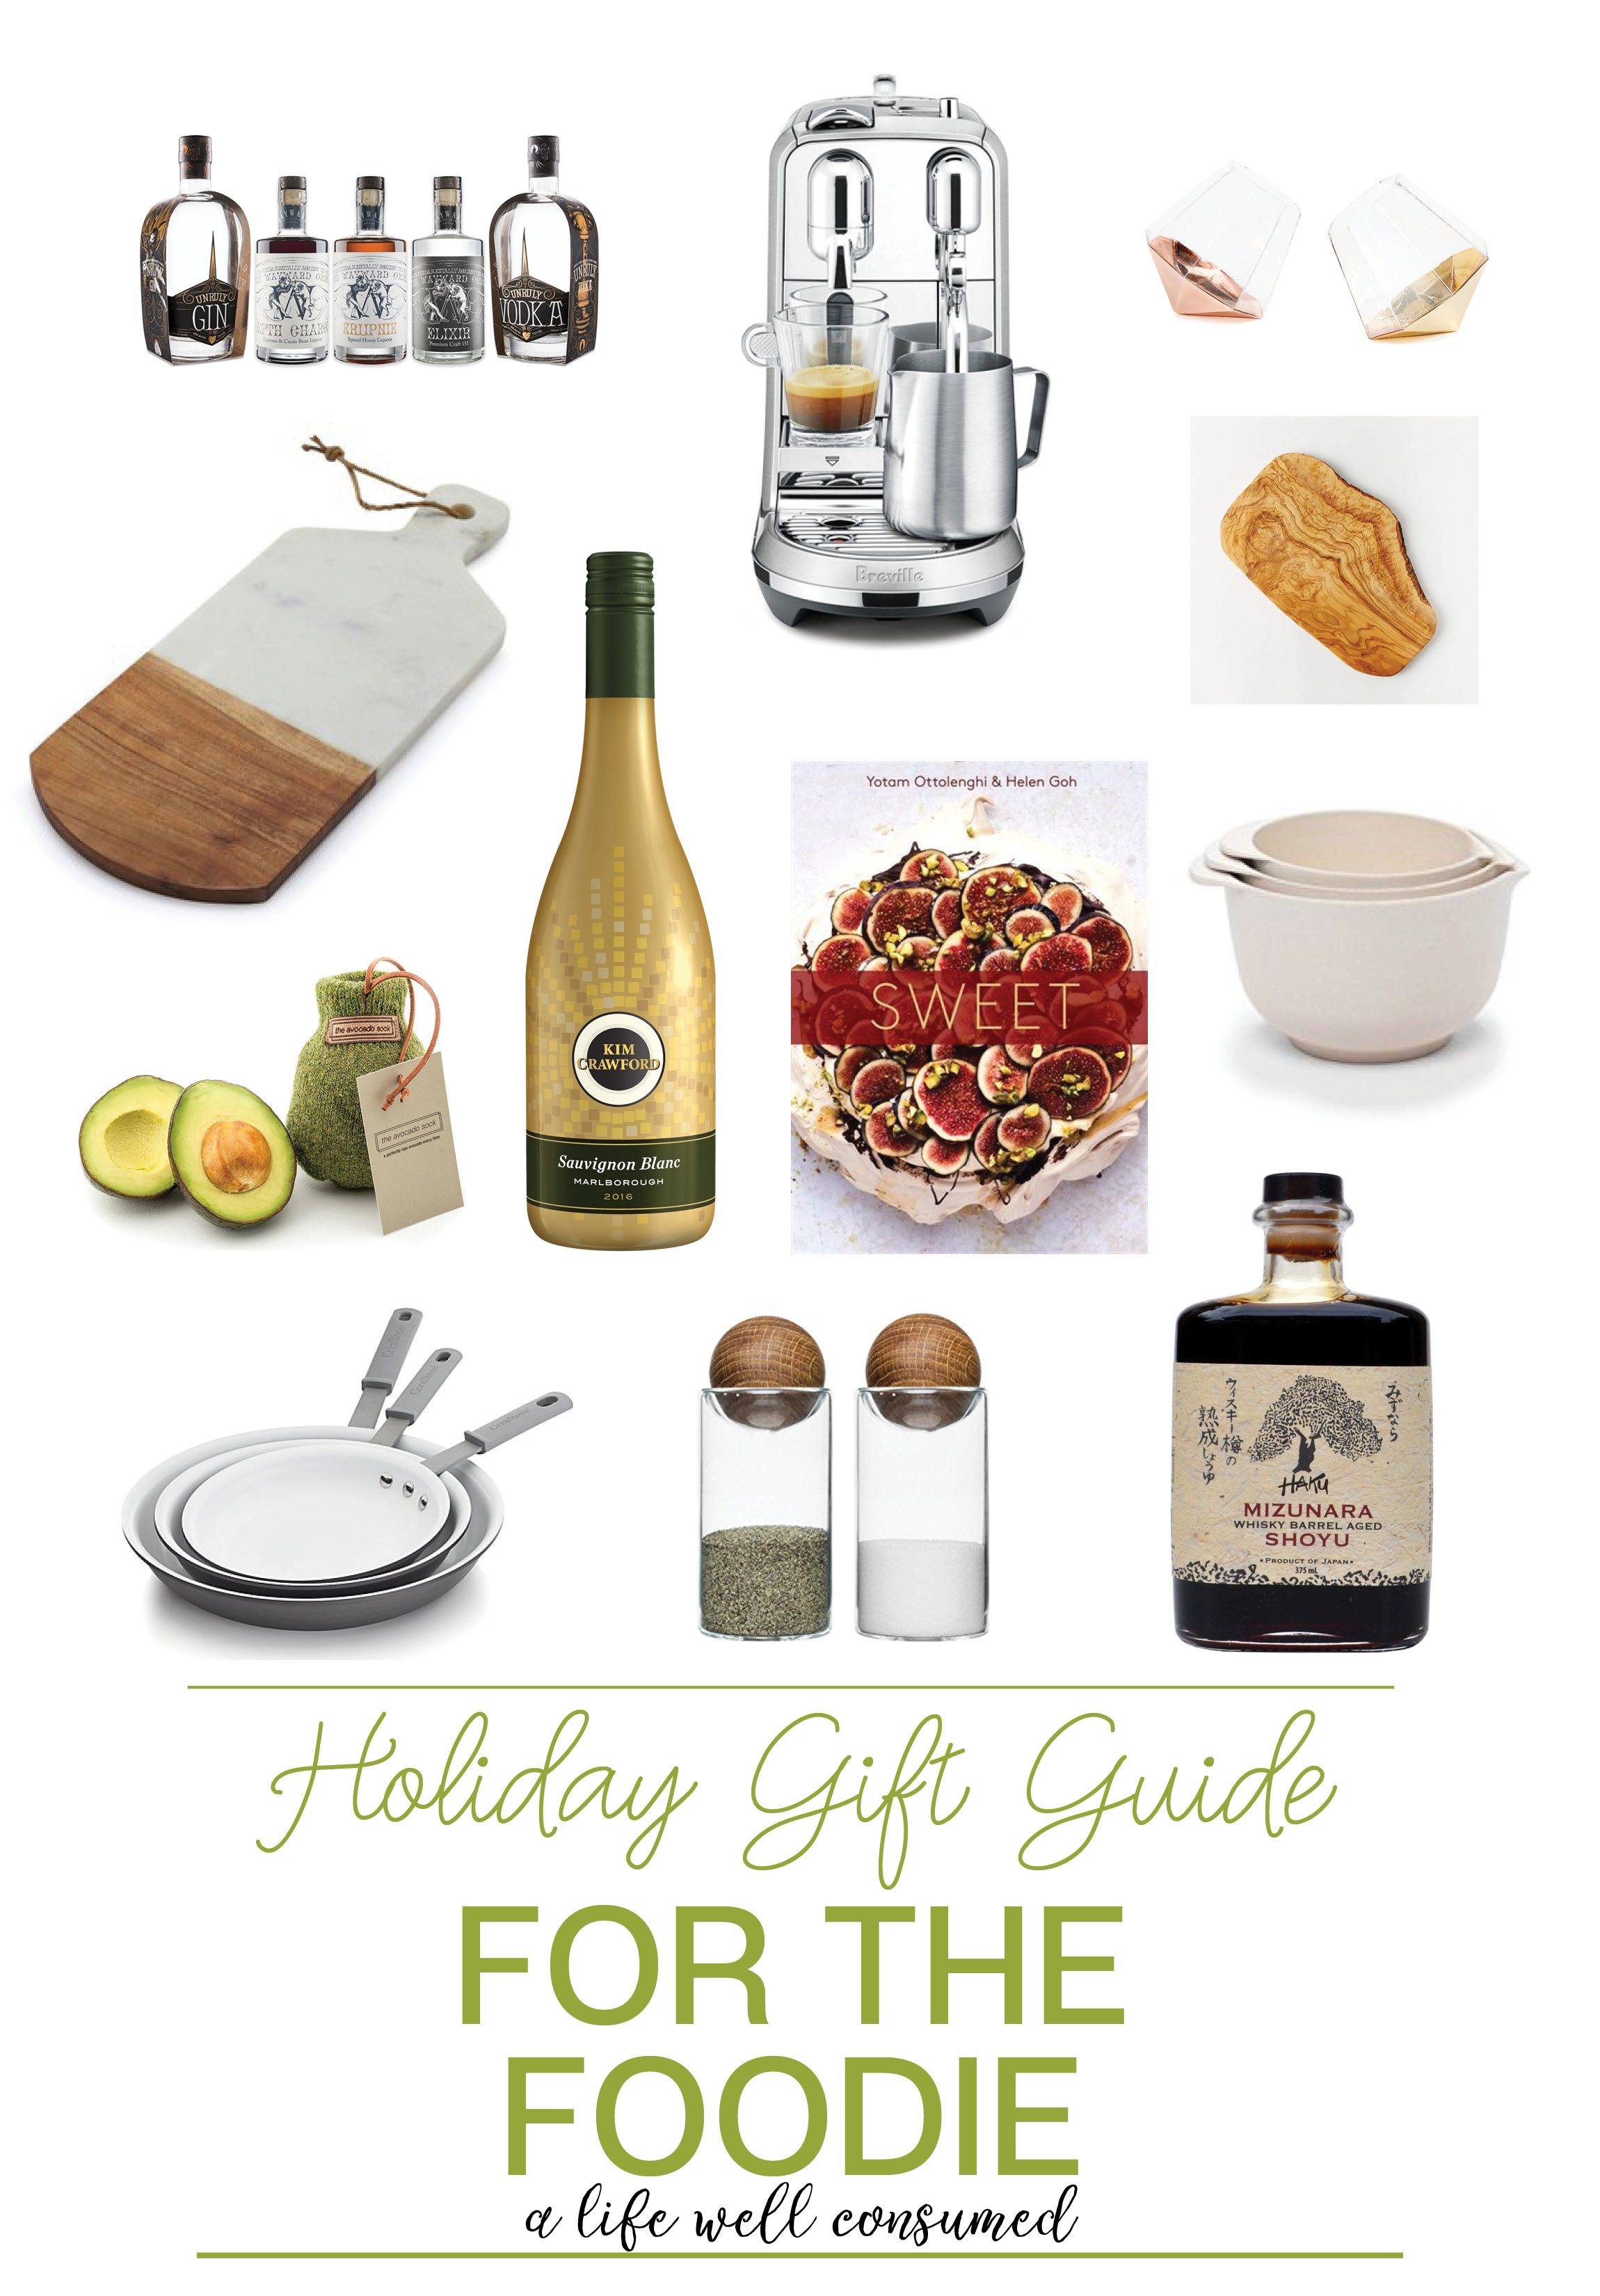 Holiday Gift Guide 2017 For the Foodie